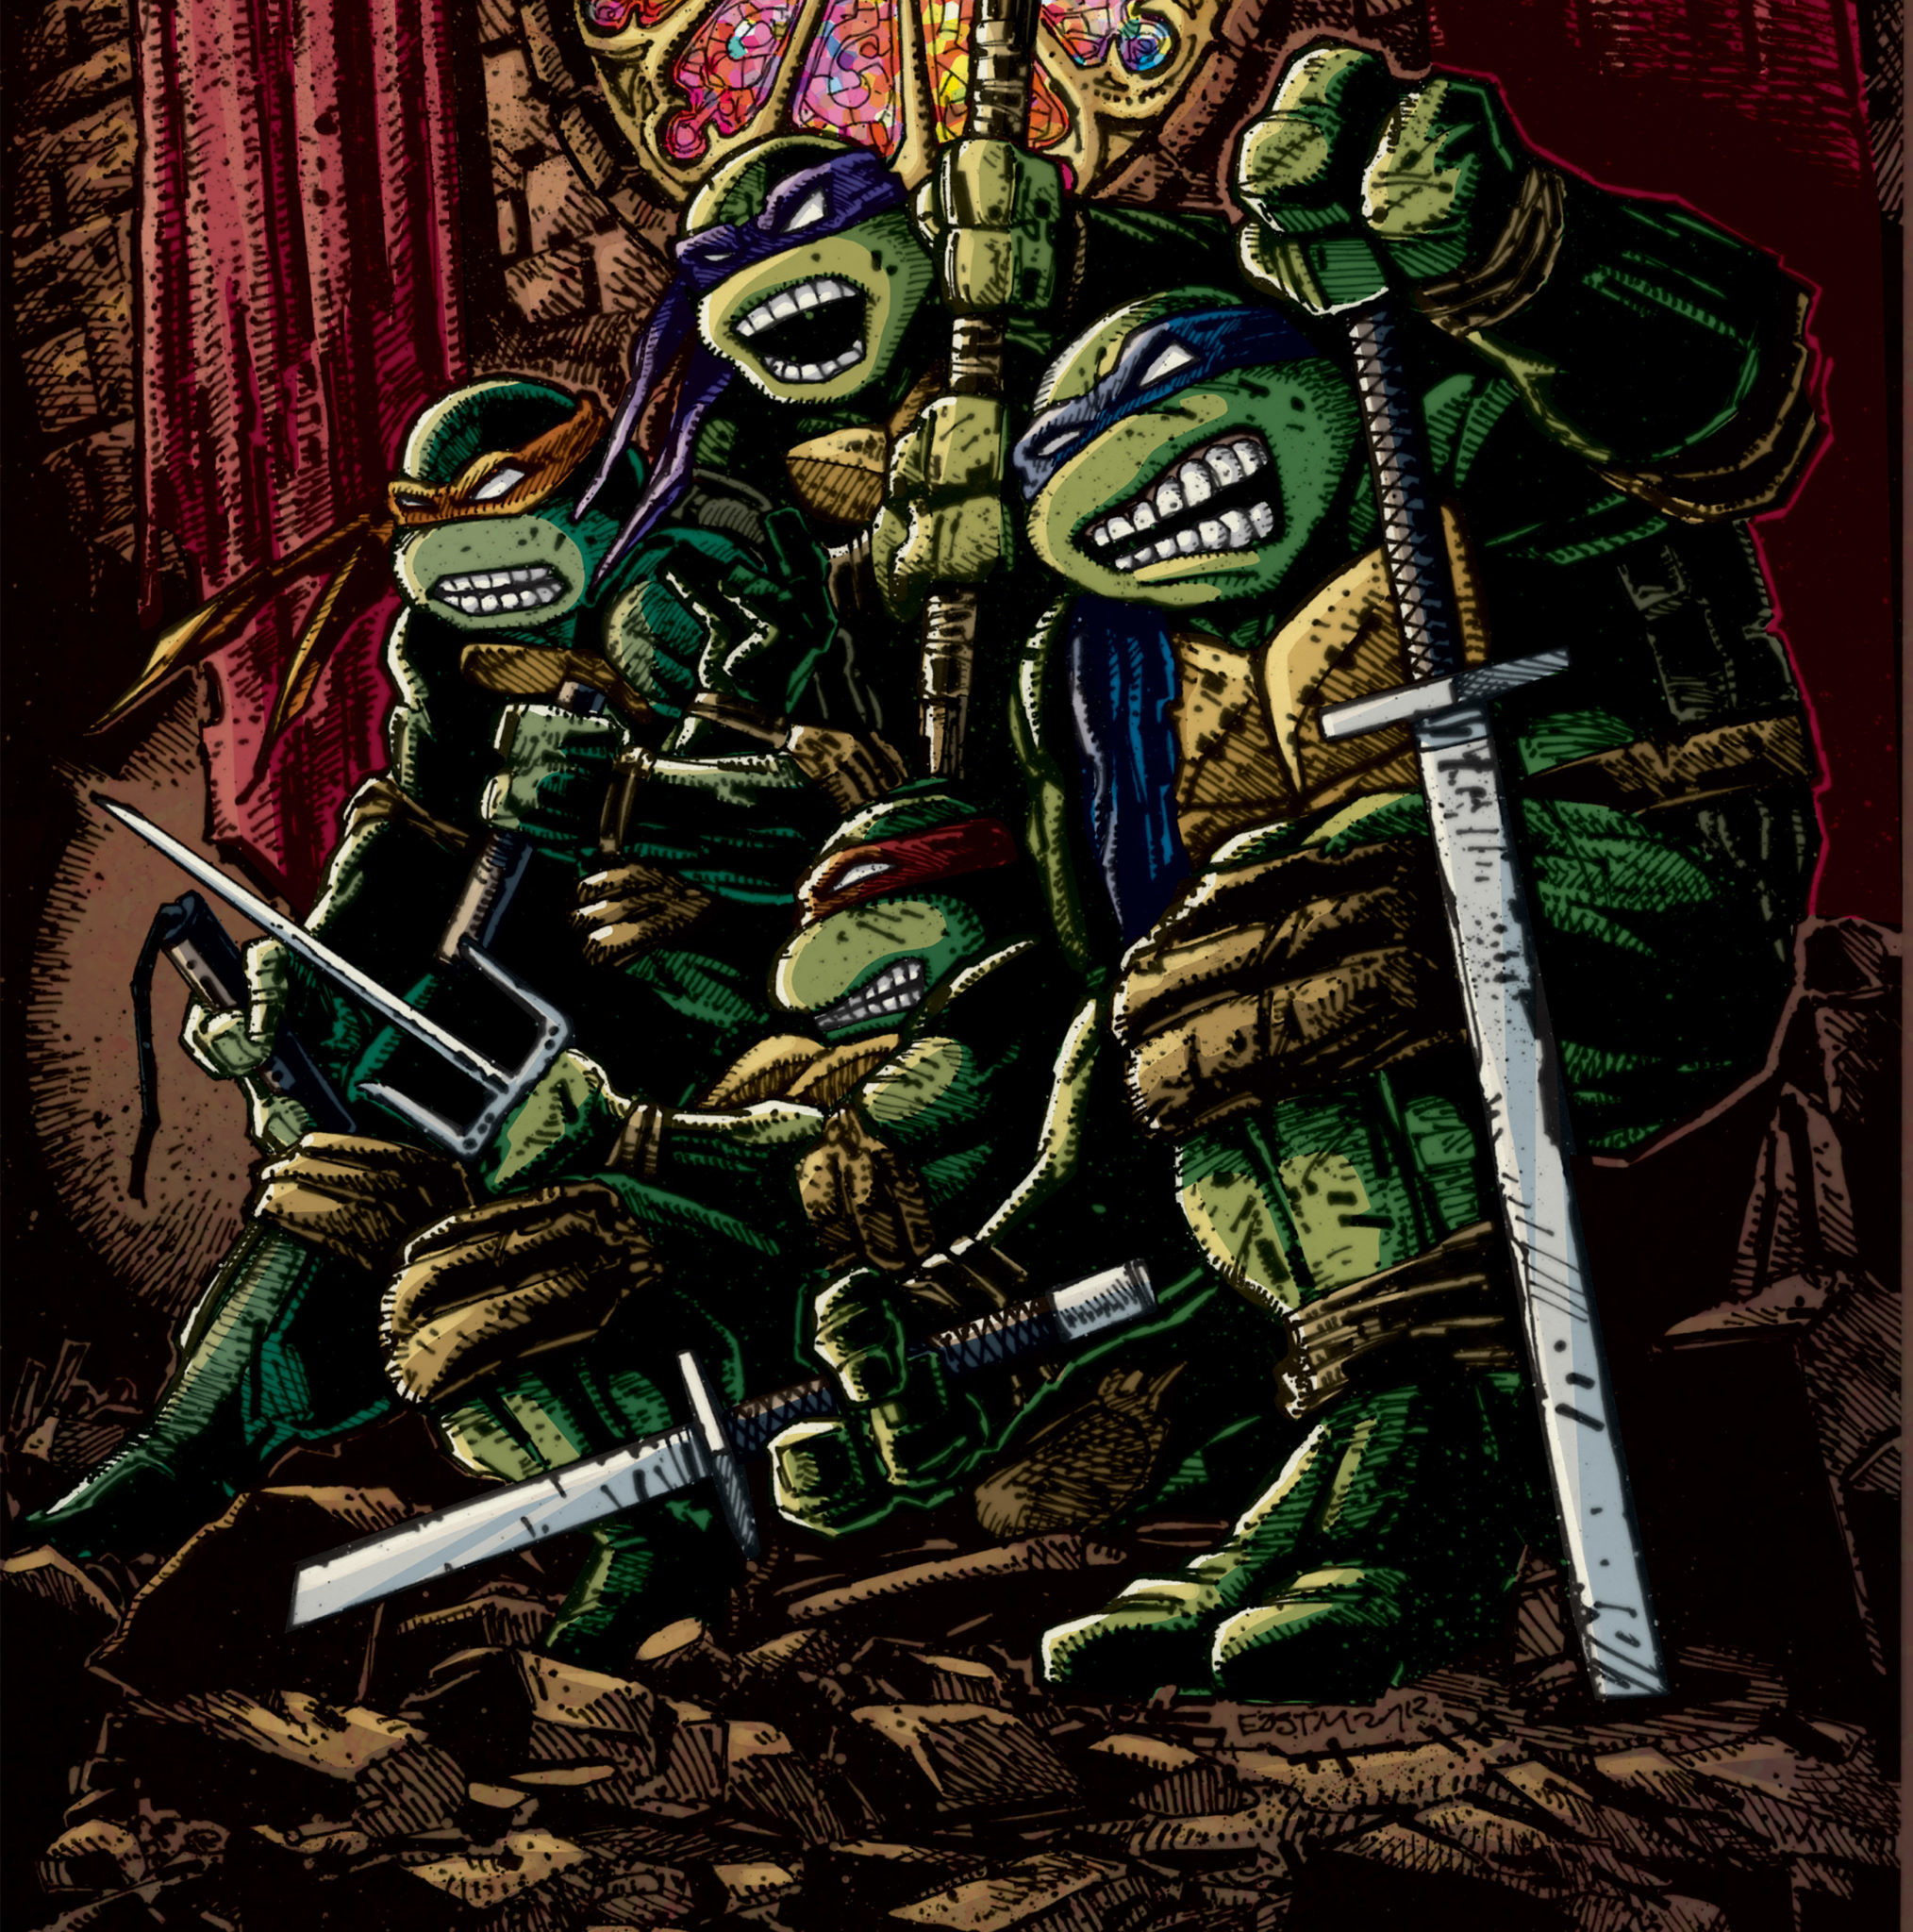 Ninja Turtles Wallpaper: Teenage Mutant Ninja Turtles Wallpapers (66+ Images